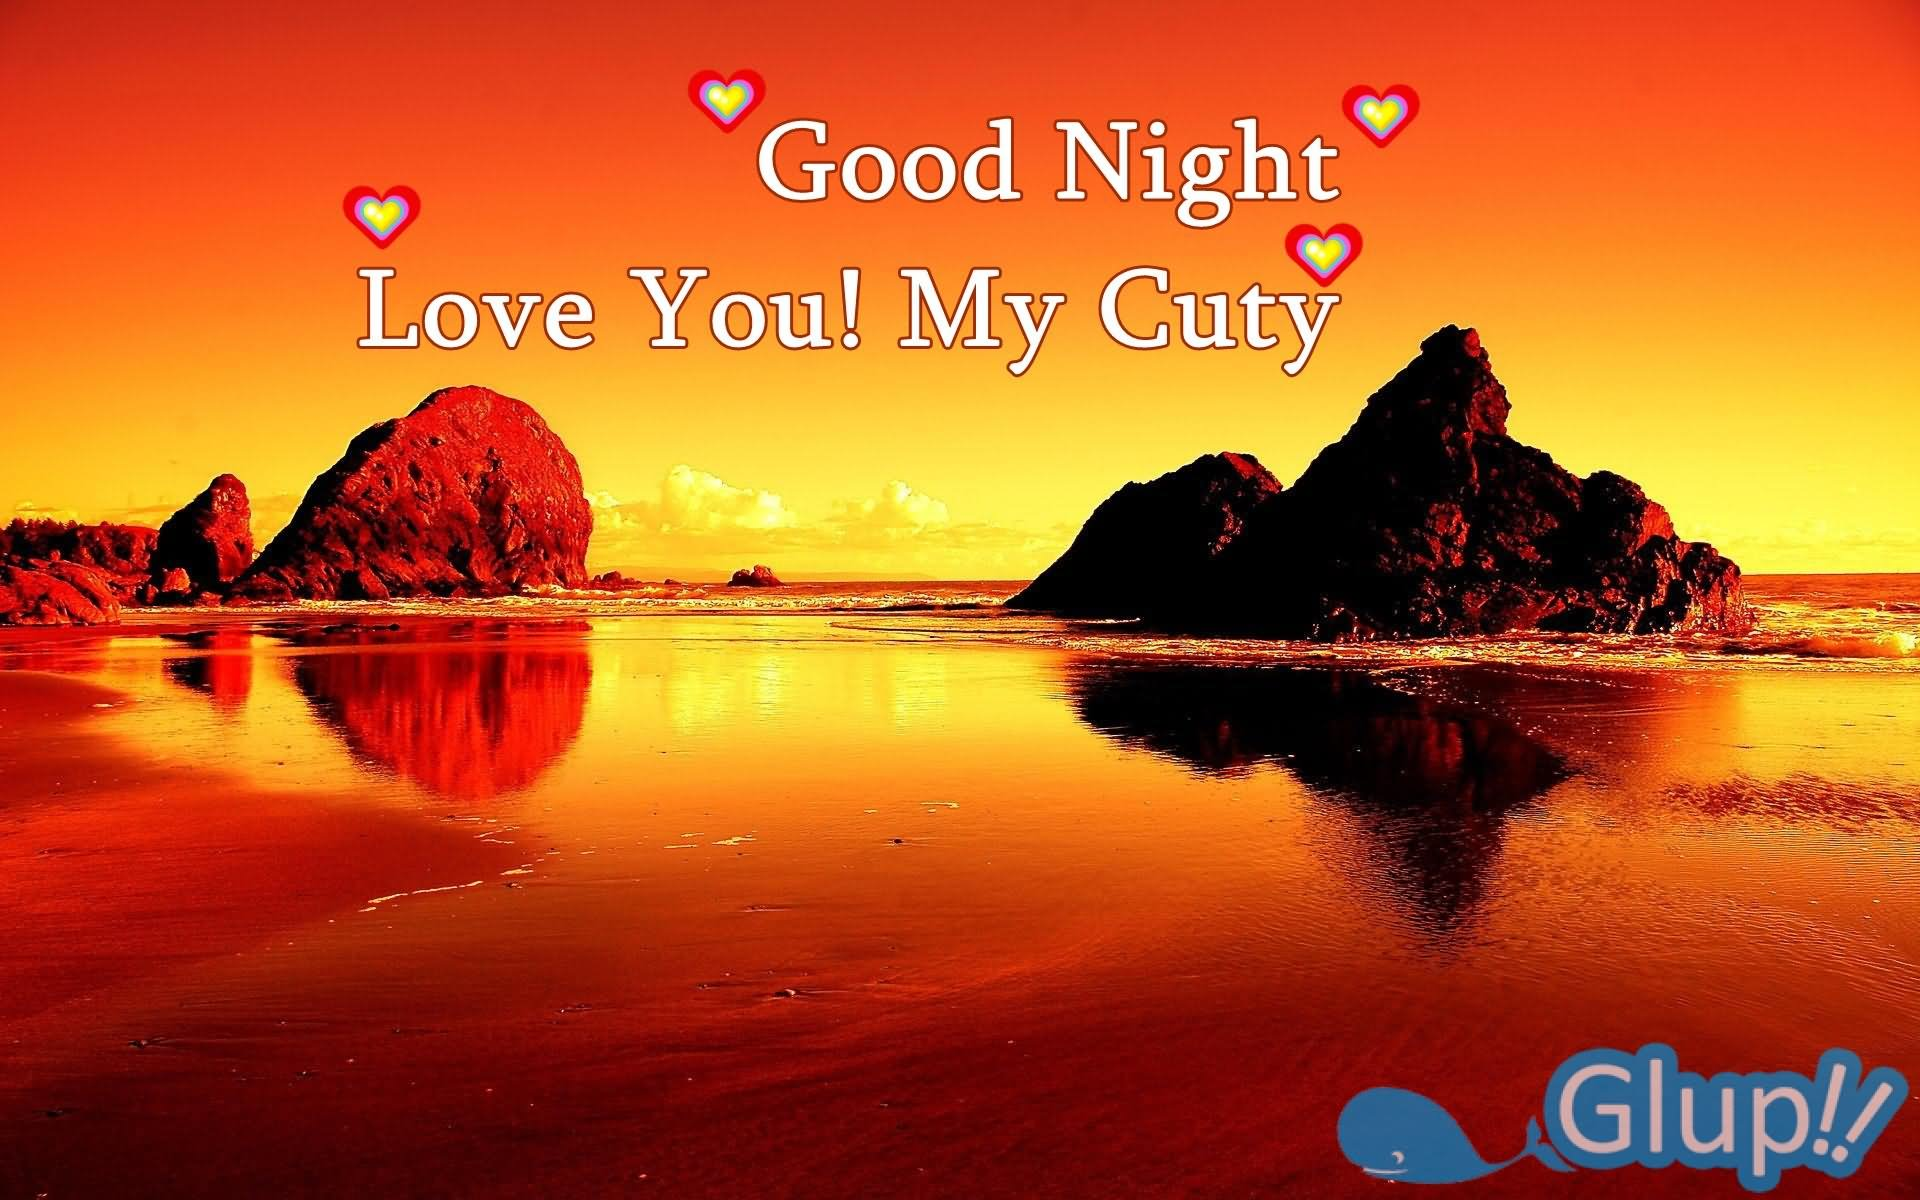 15 Awesome Good Night Love Images